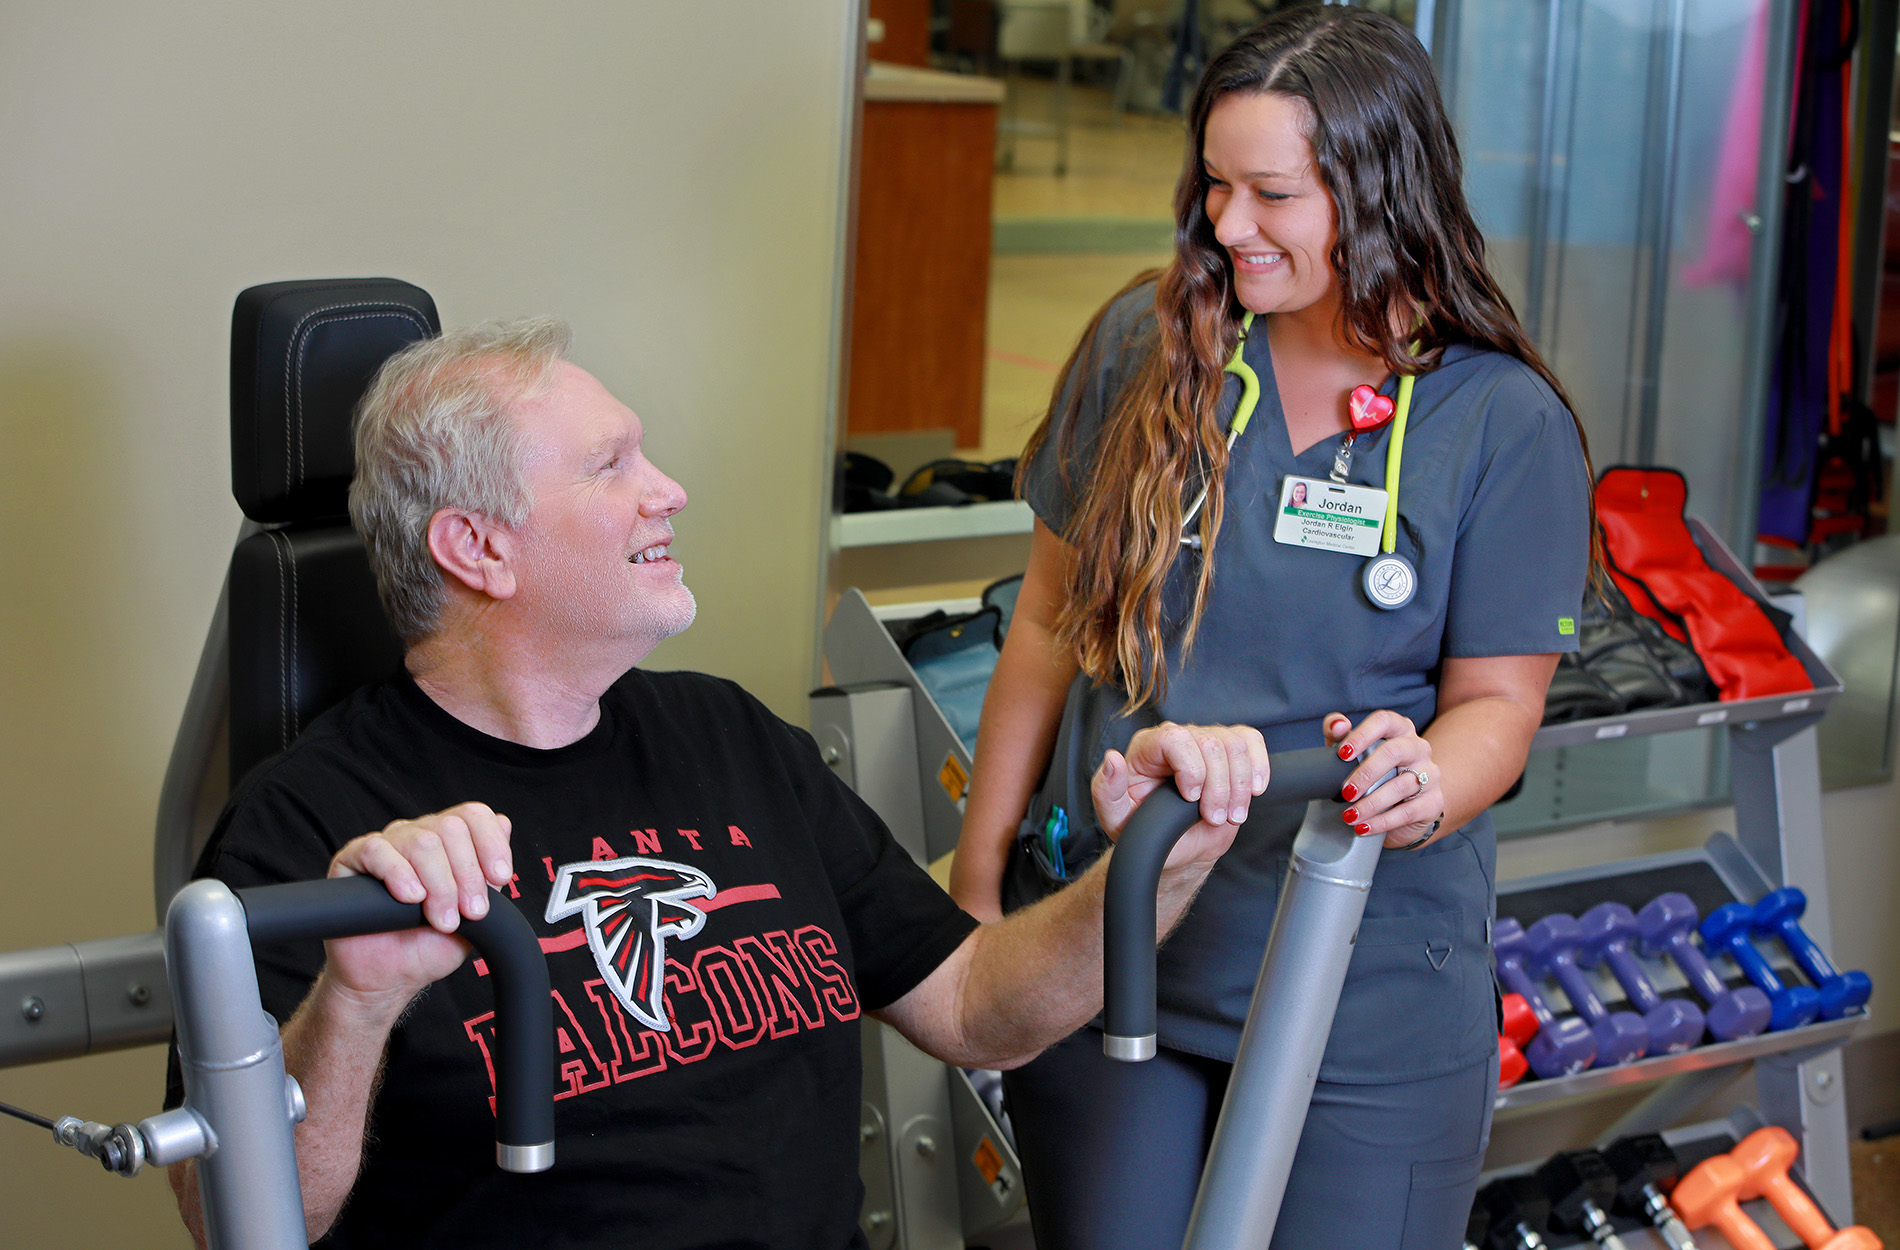 Cardiac Rehab nurse with patient